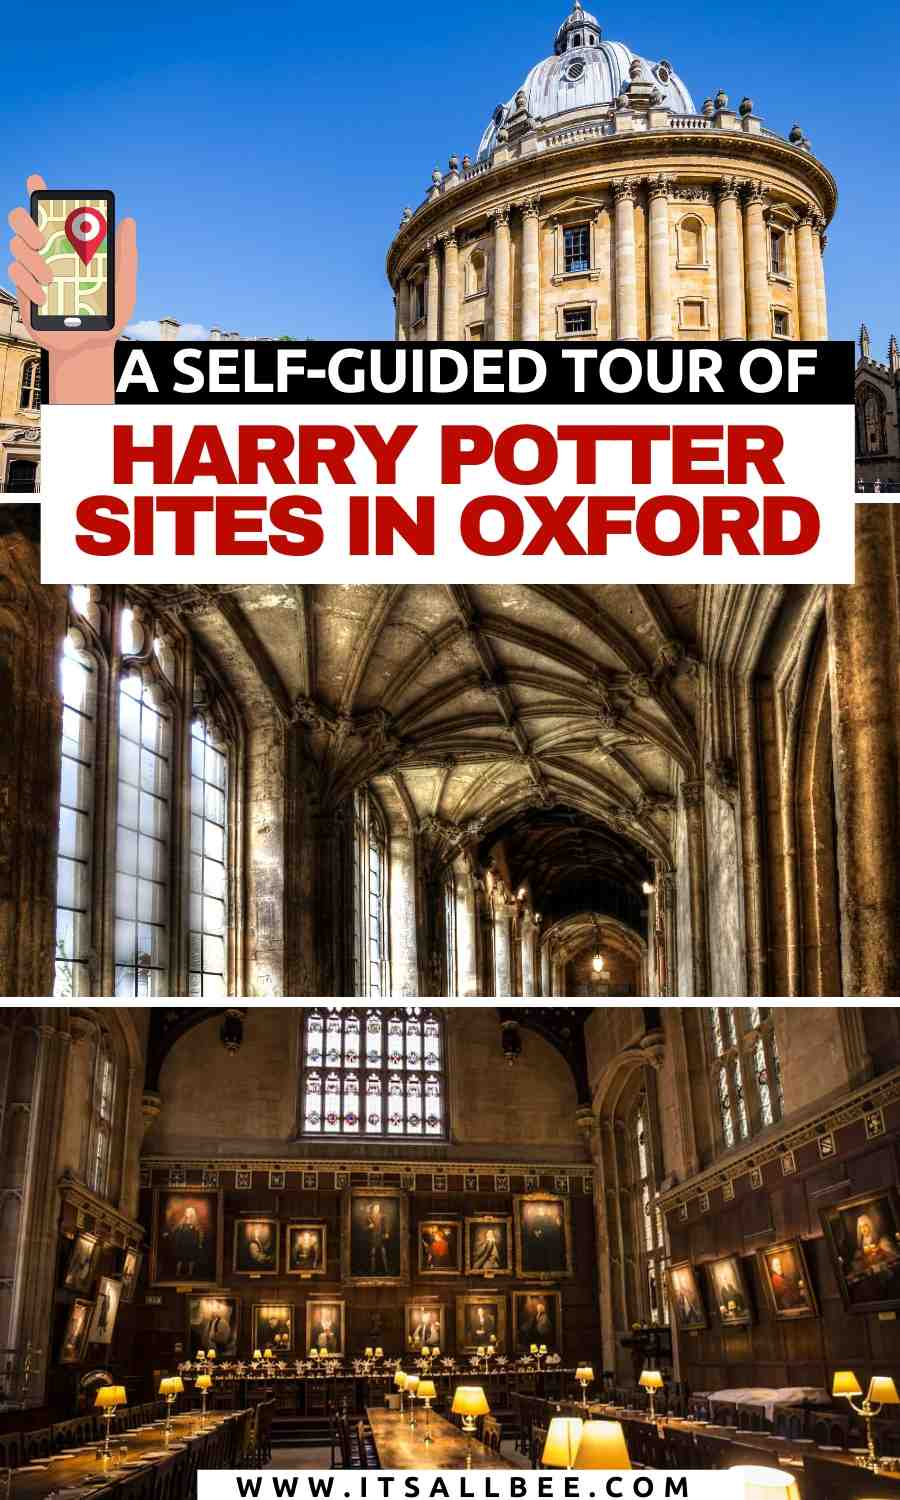 Harry Potter sites in Oxford | Oxford Harry Potter sites